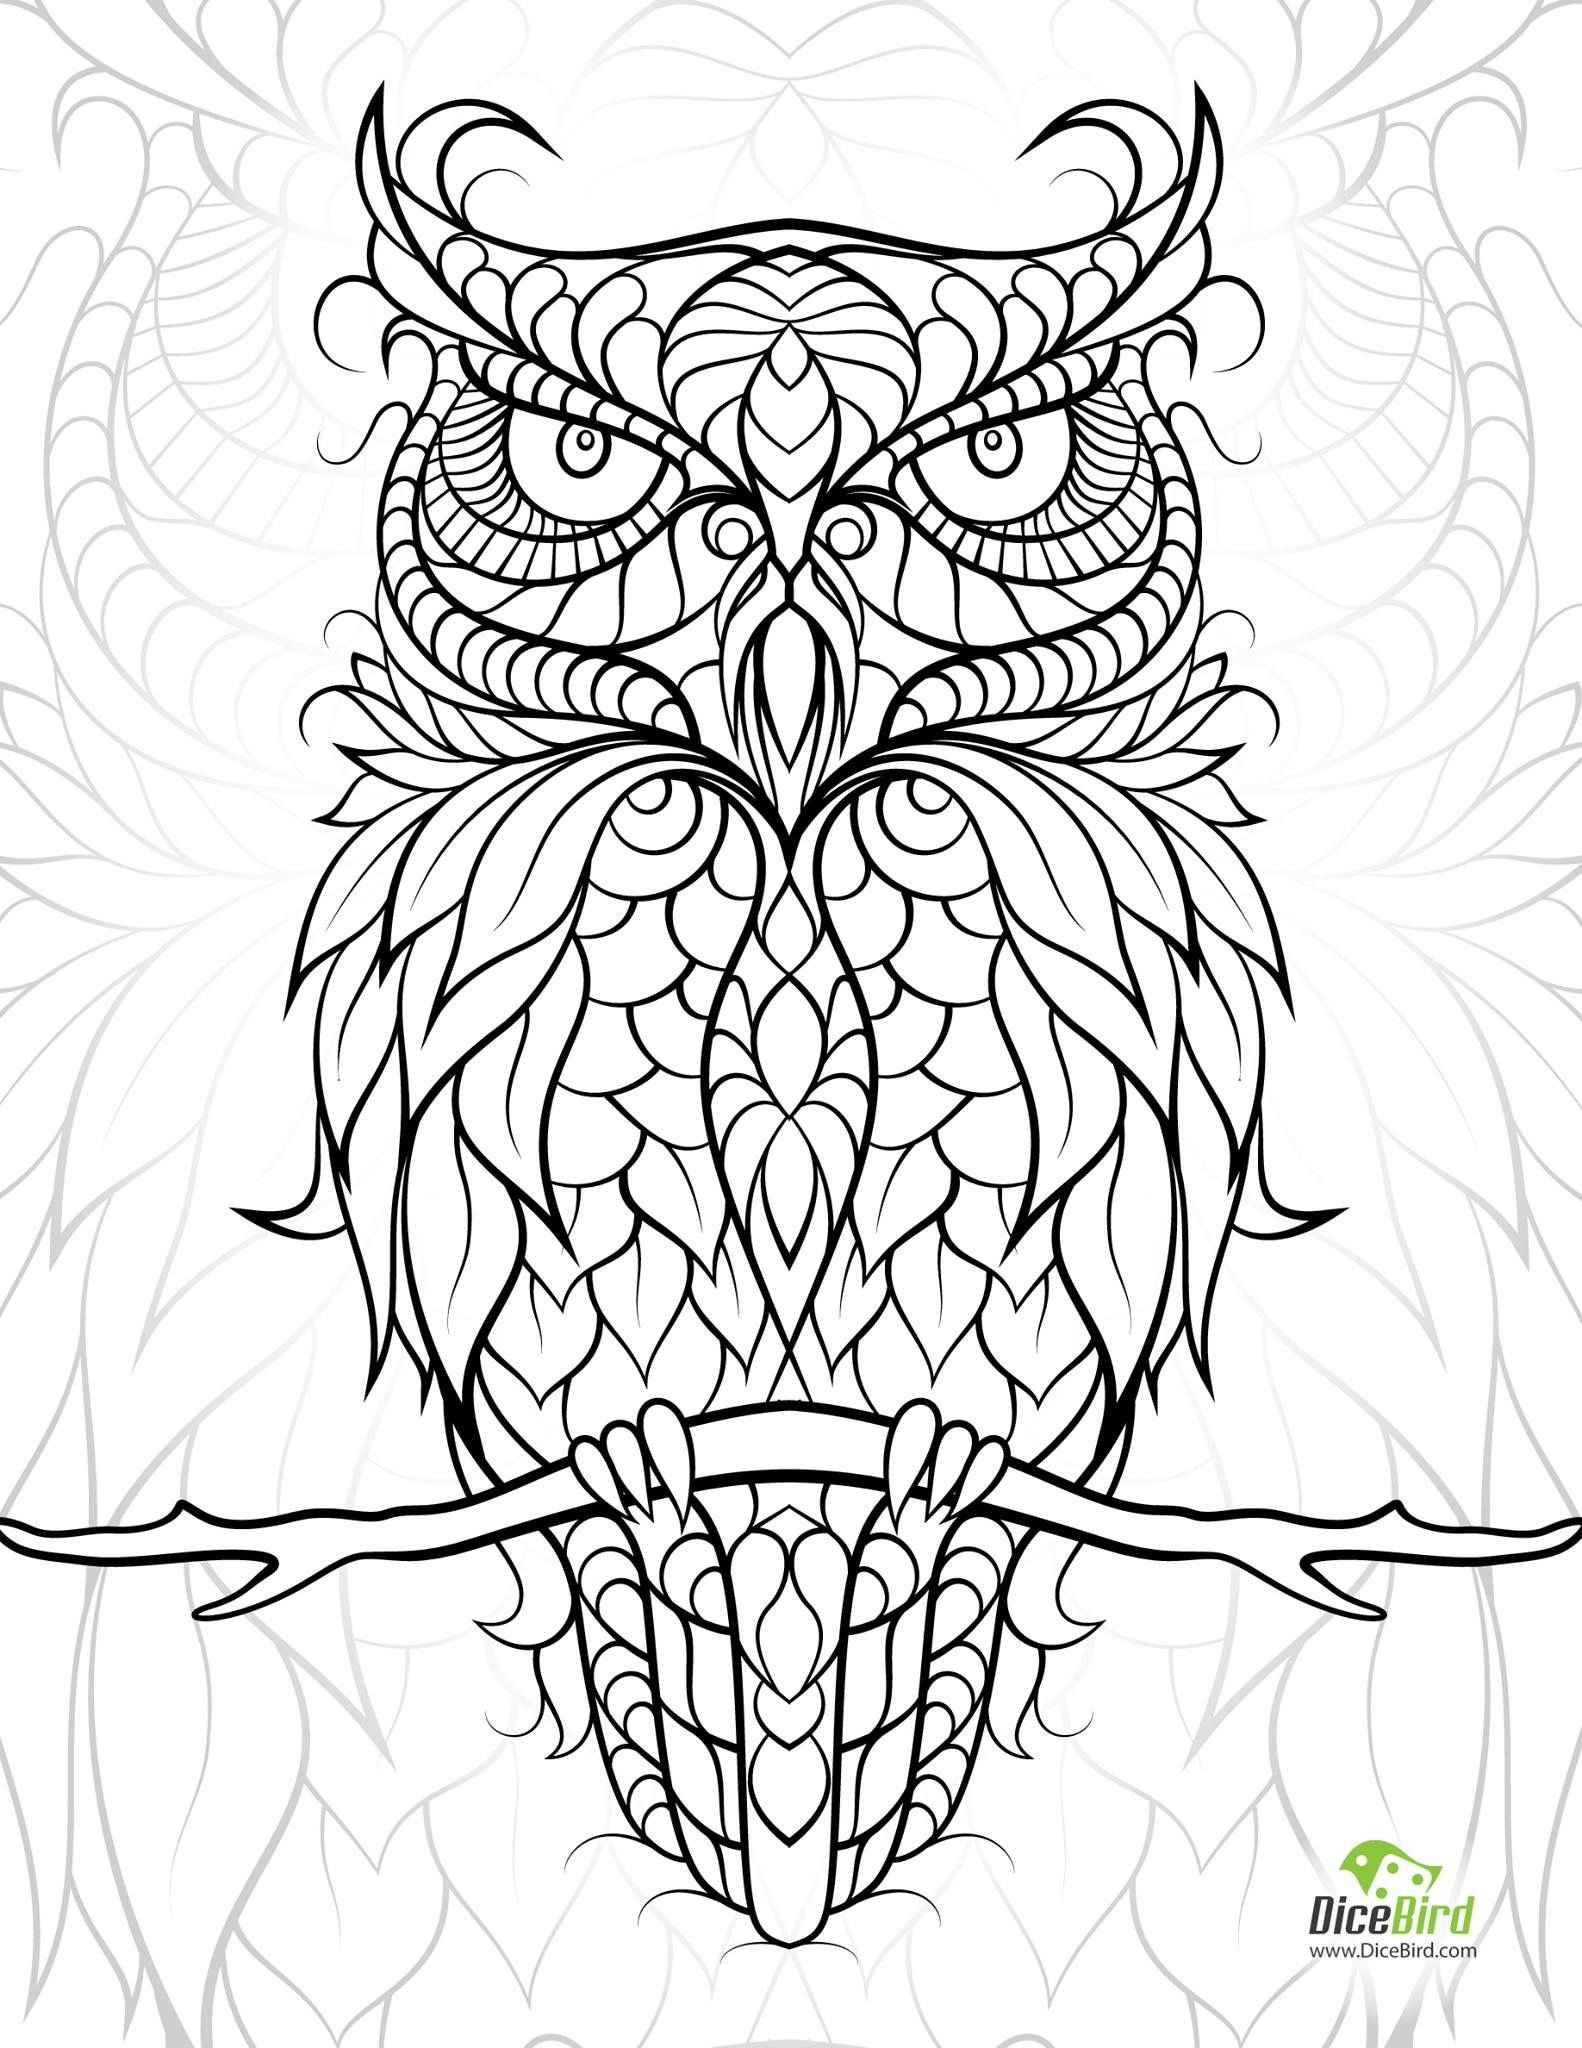 owl colouring page | Tattoo Dreams | Pinterest | Eule, Ausmalen und ...